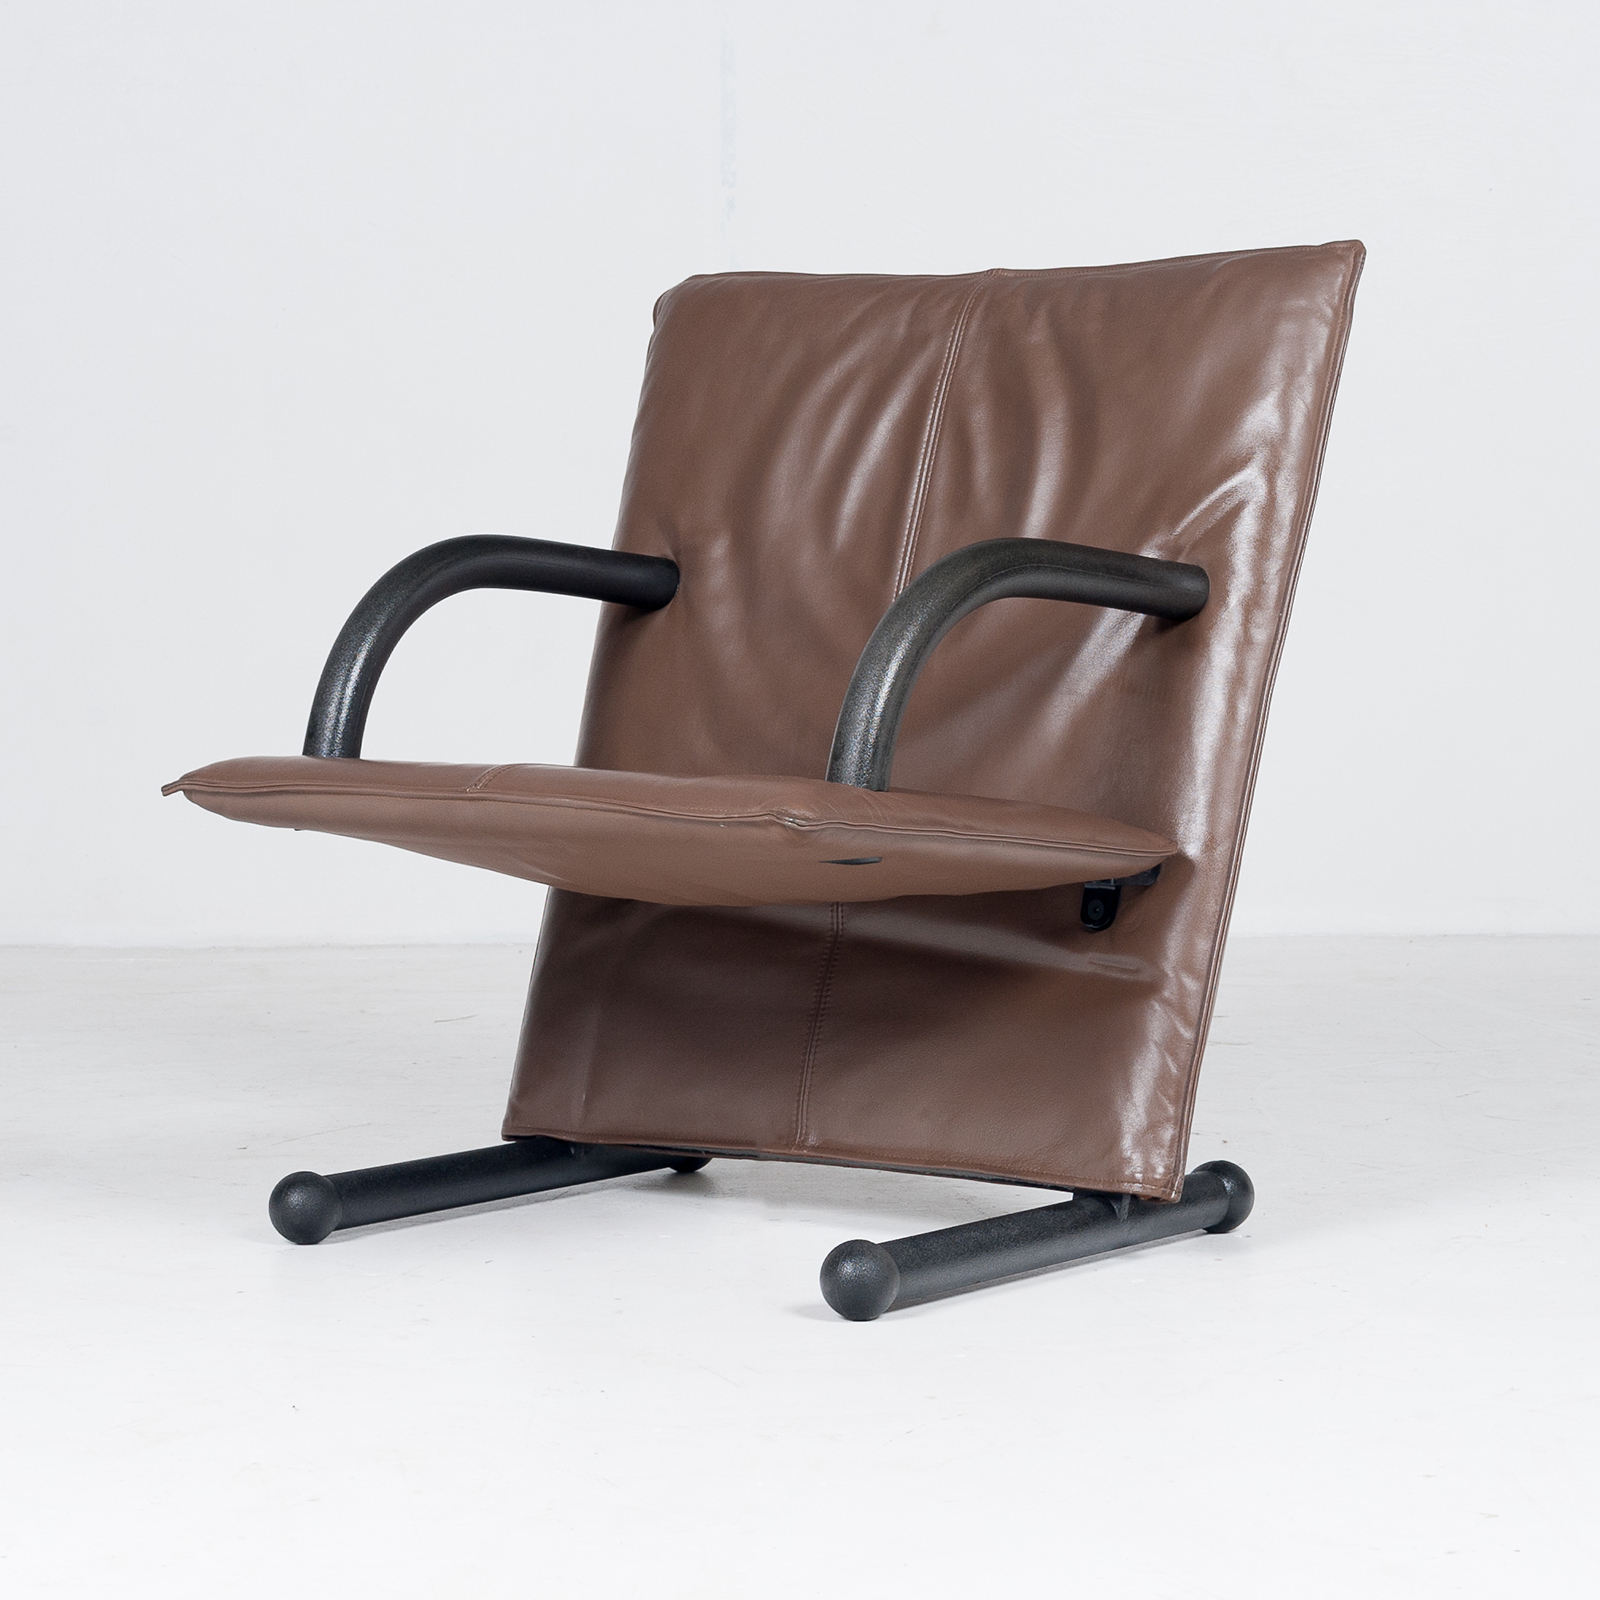 Model T Line Chair In By Burkhard Vogtherr For Arflex In Brown Leather, 1980s, Italy67